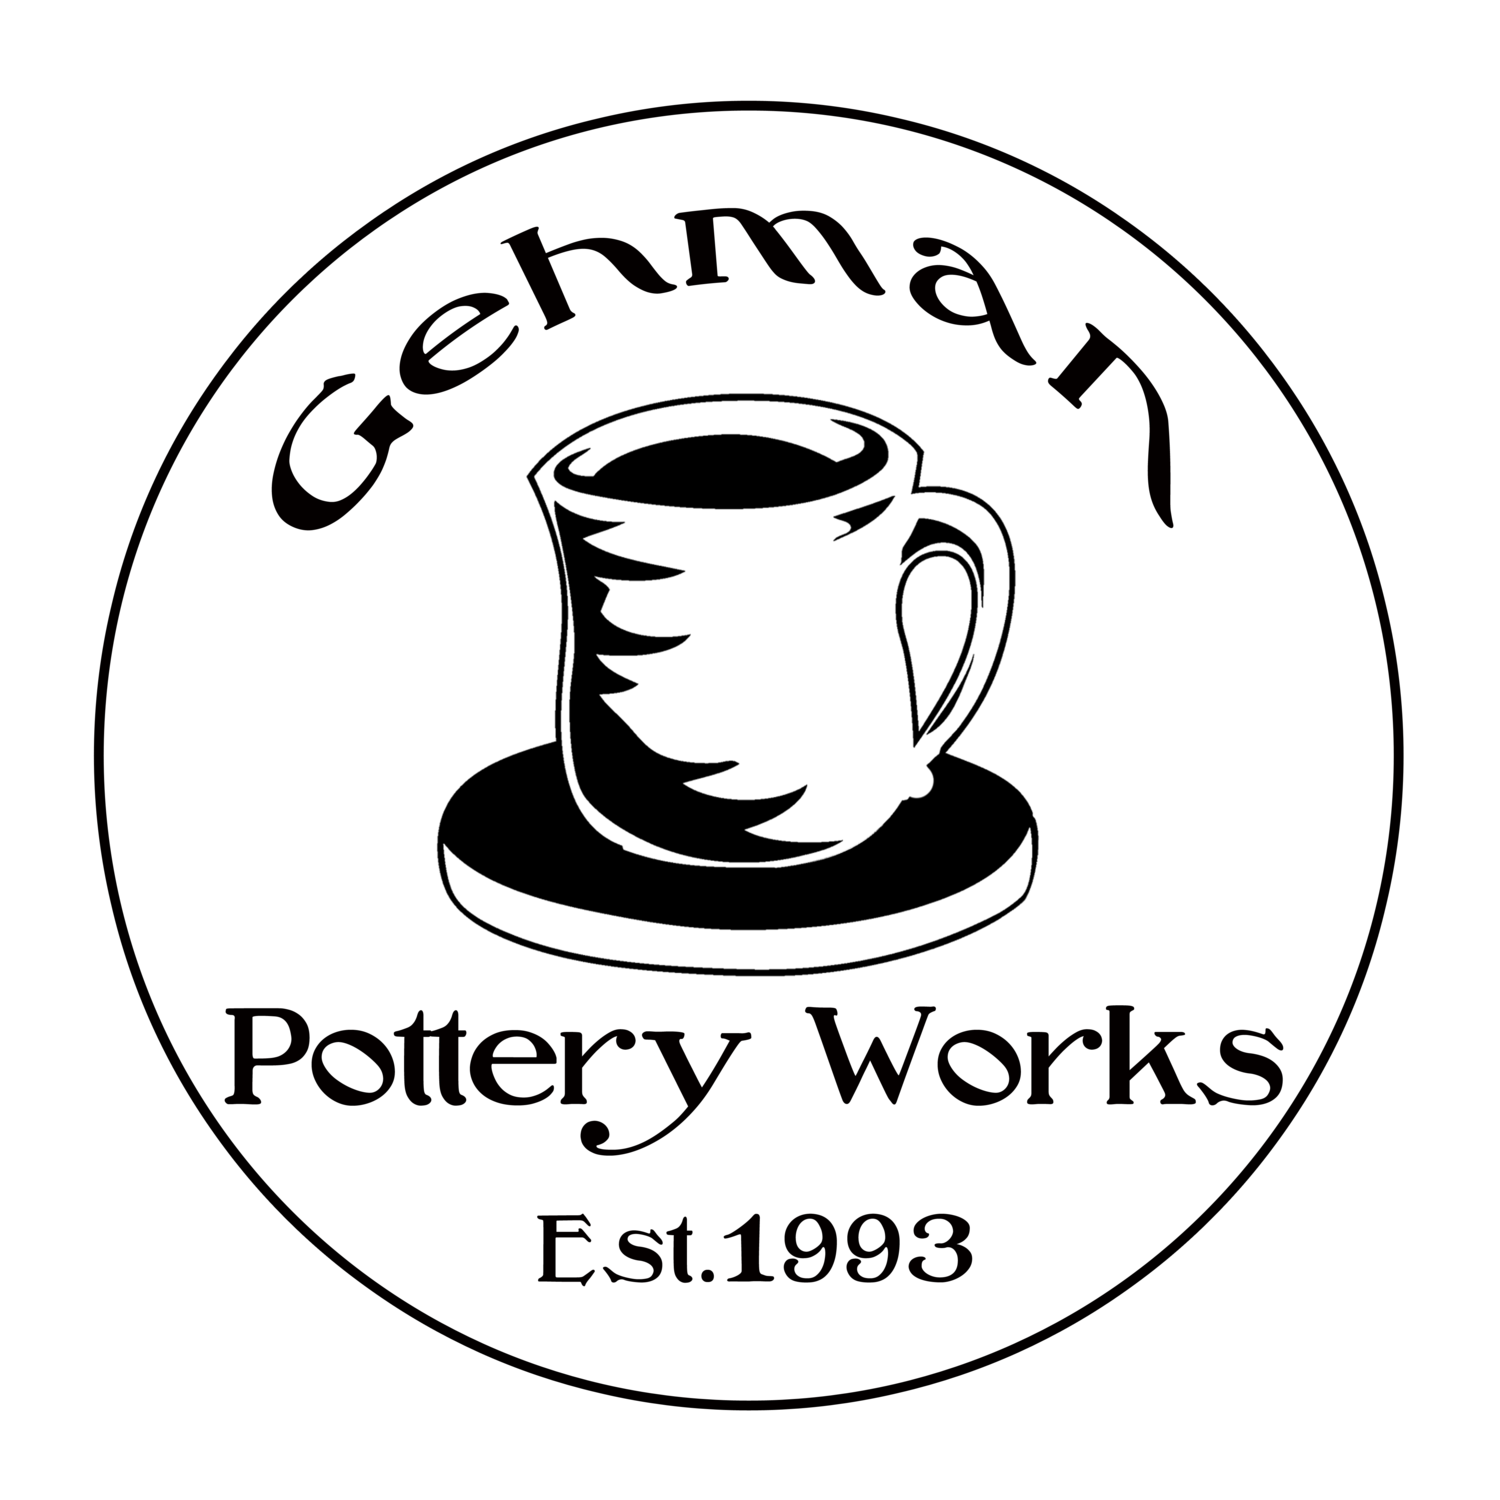 Gehman Pottery Works